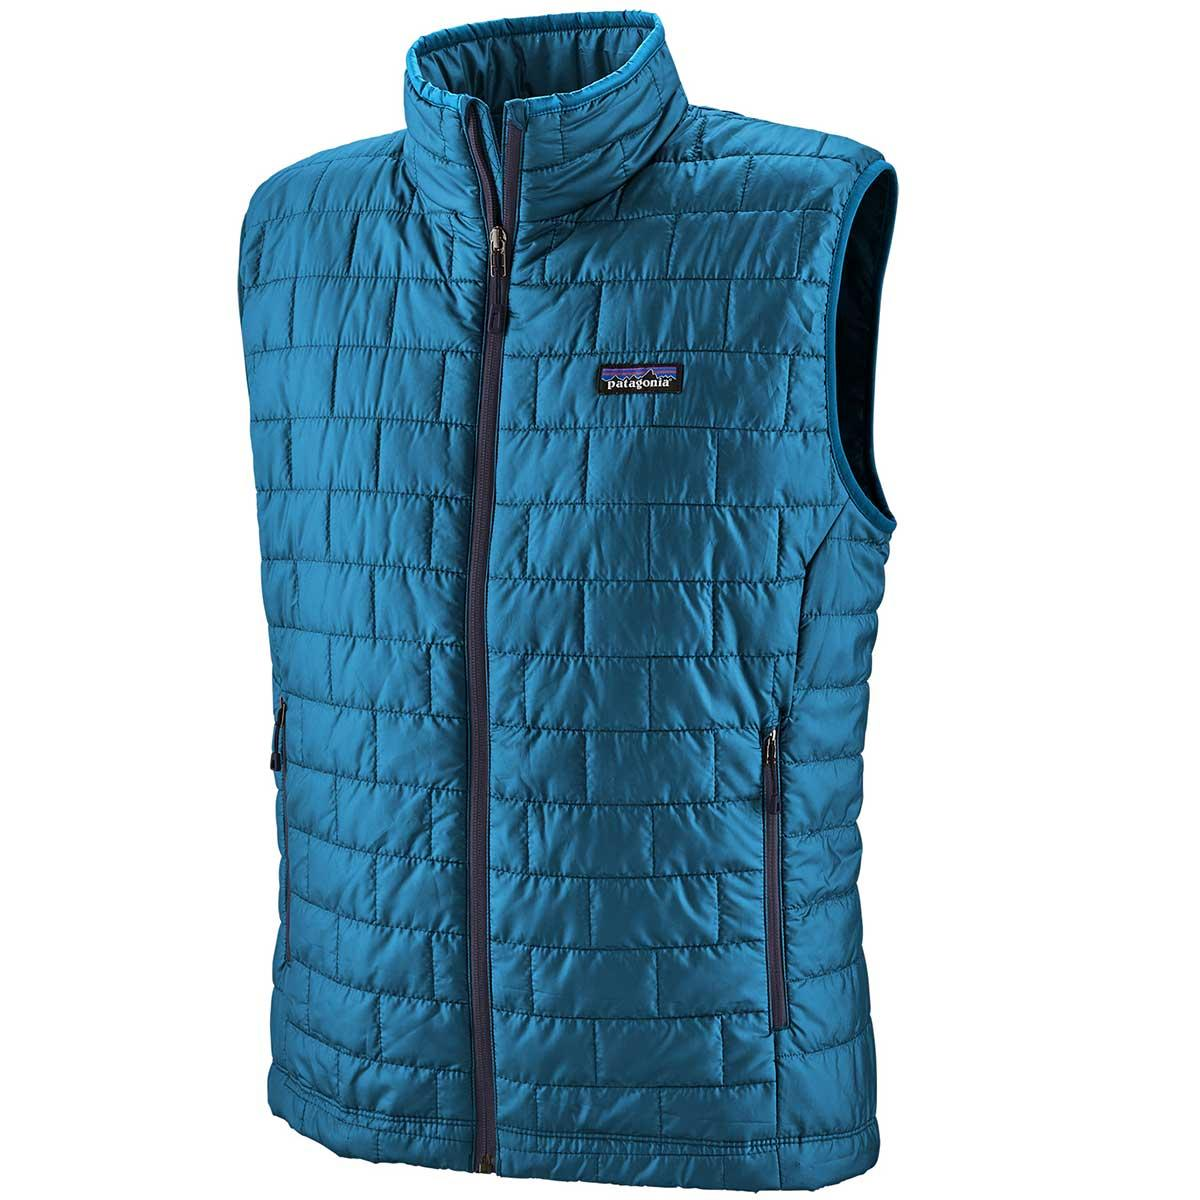 Patagonia men's Nano Puff Vest in Balkan Blue